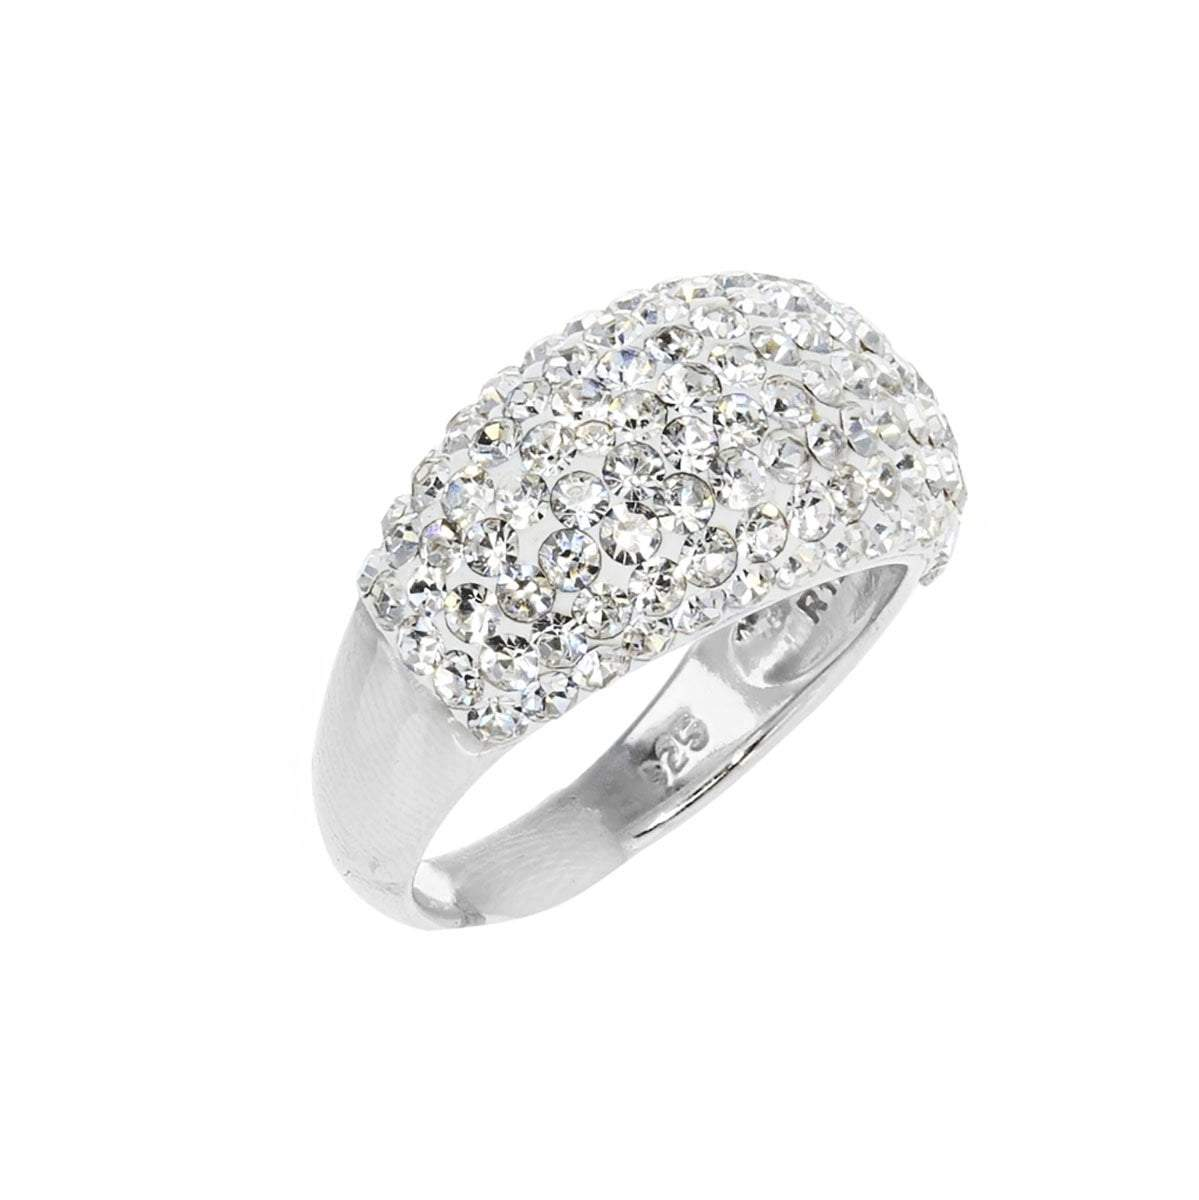 Swarovski Dome Crystal Ring